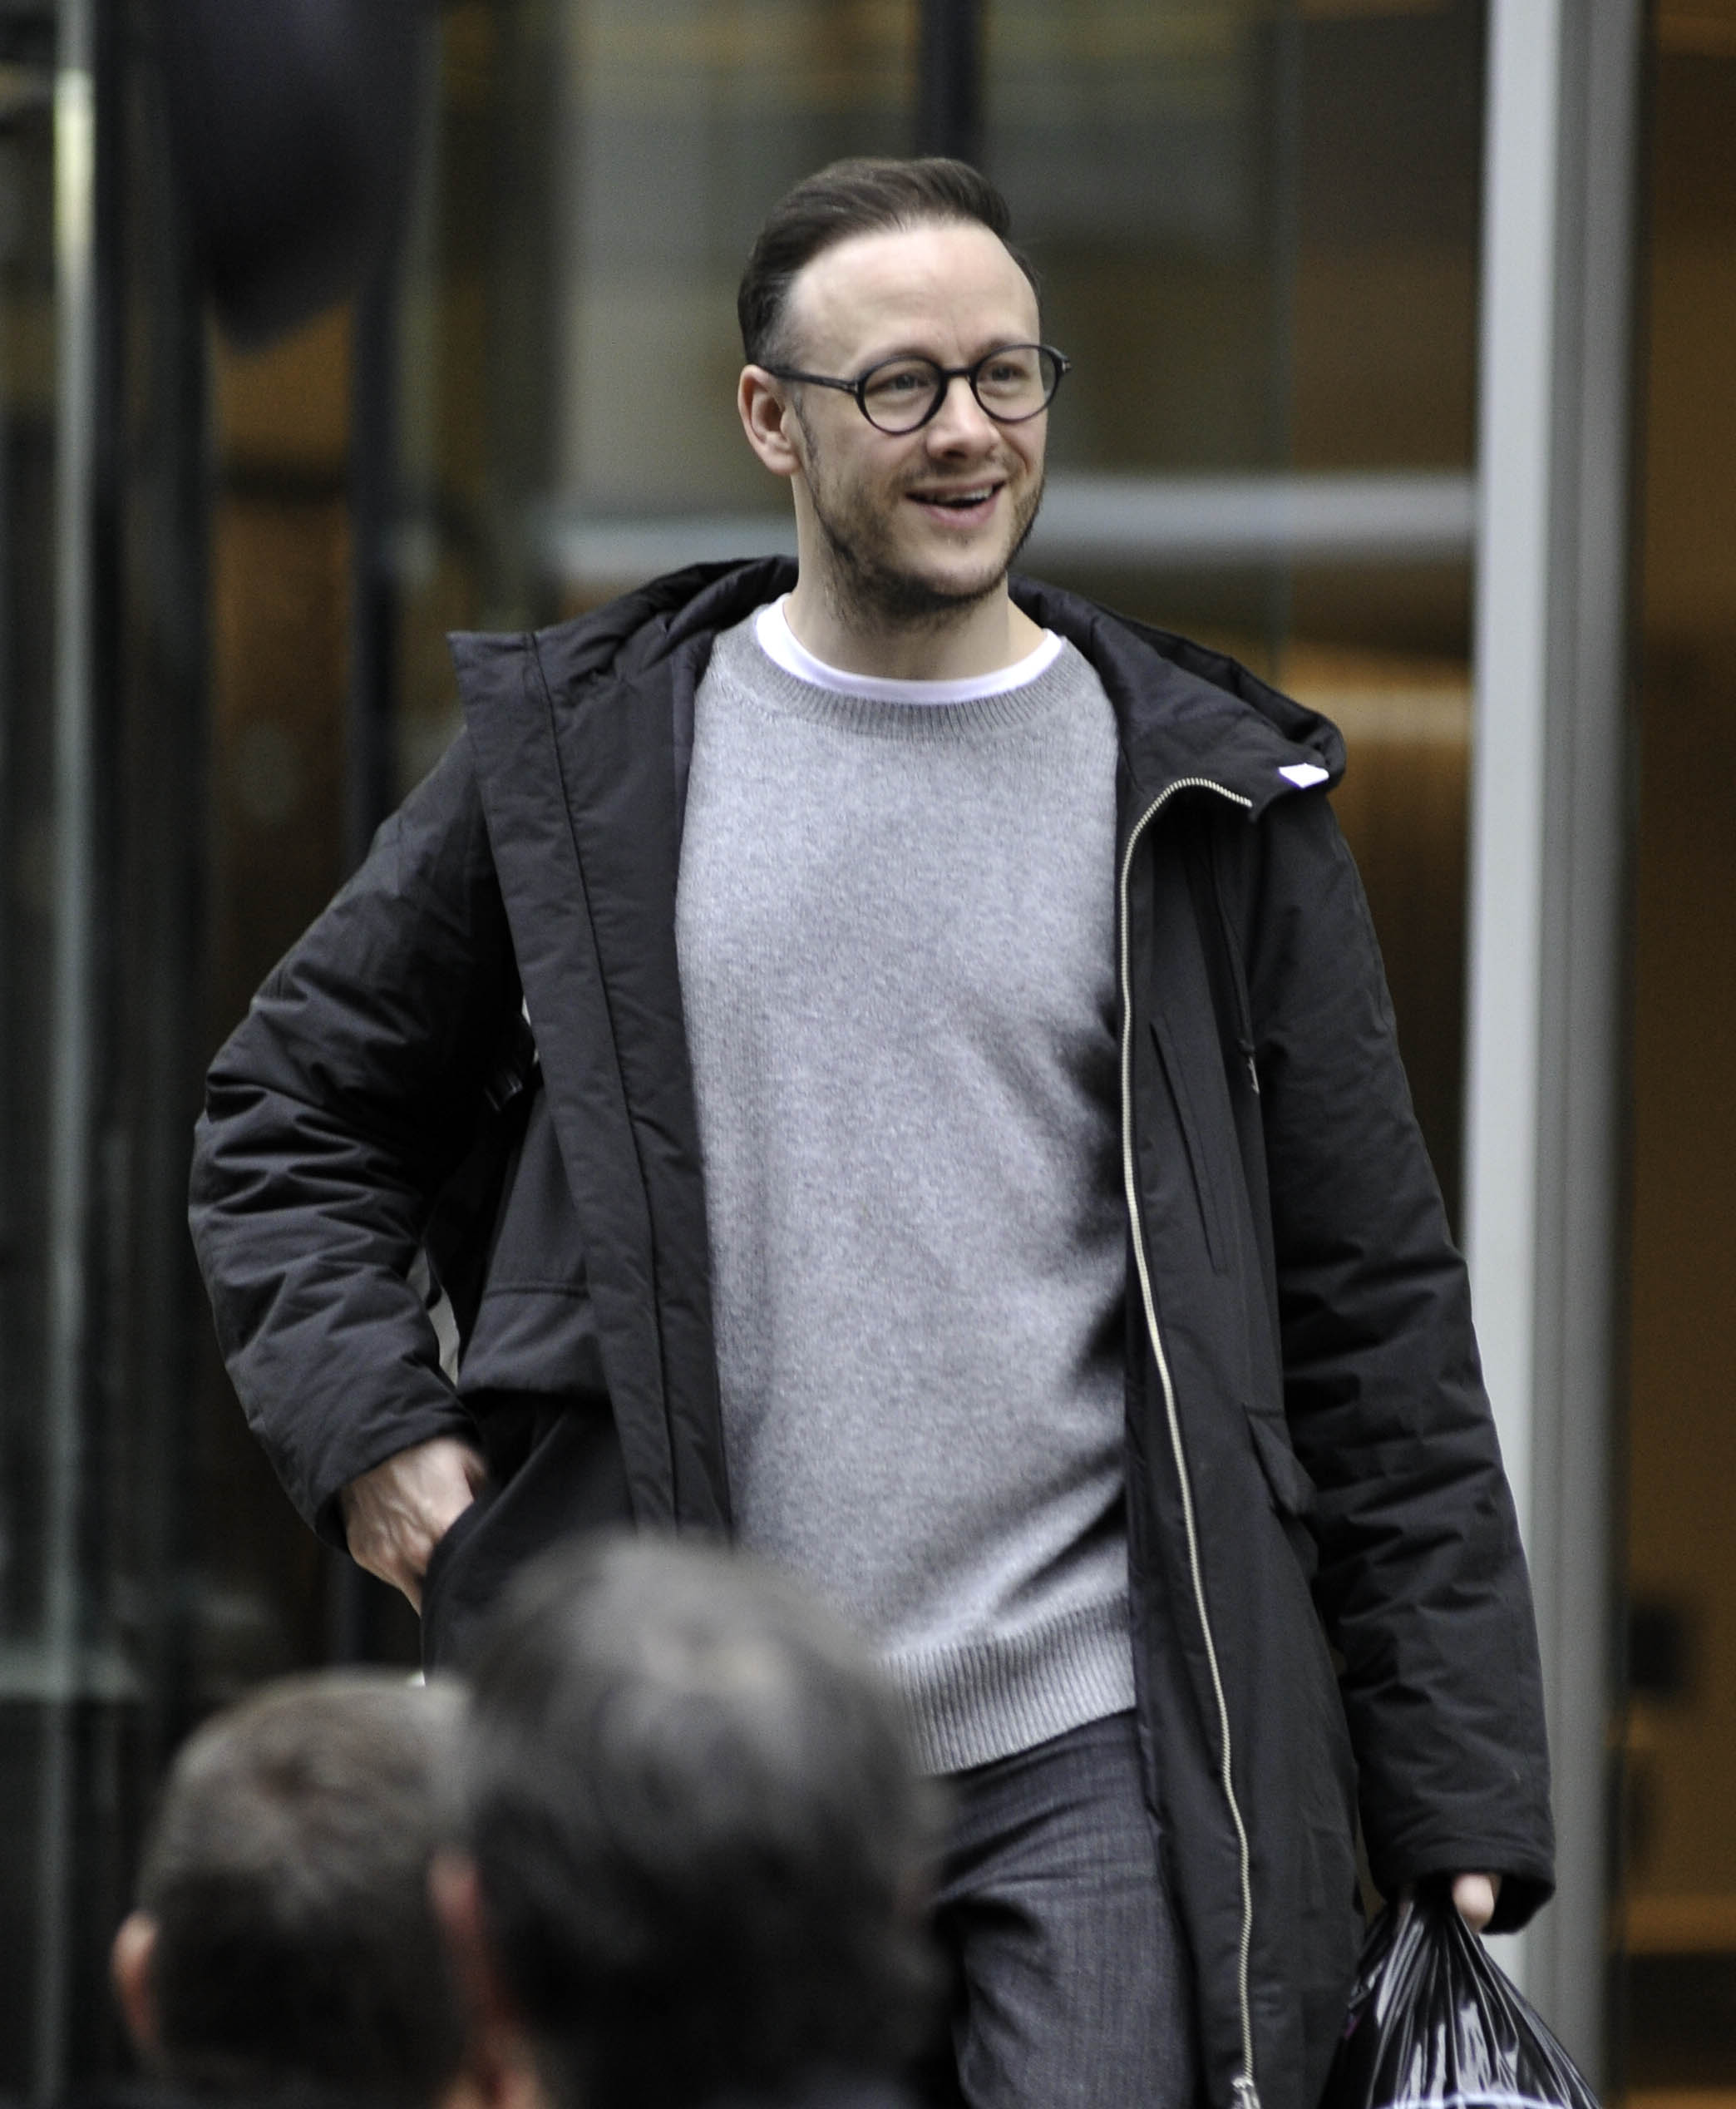 Kevin Clifton quit Strictly Come Dancing in March